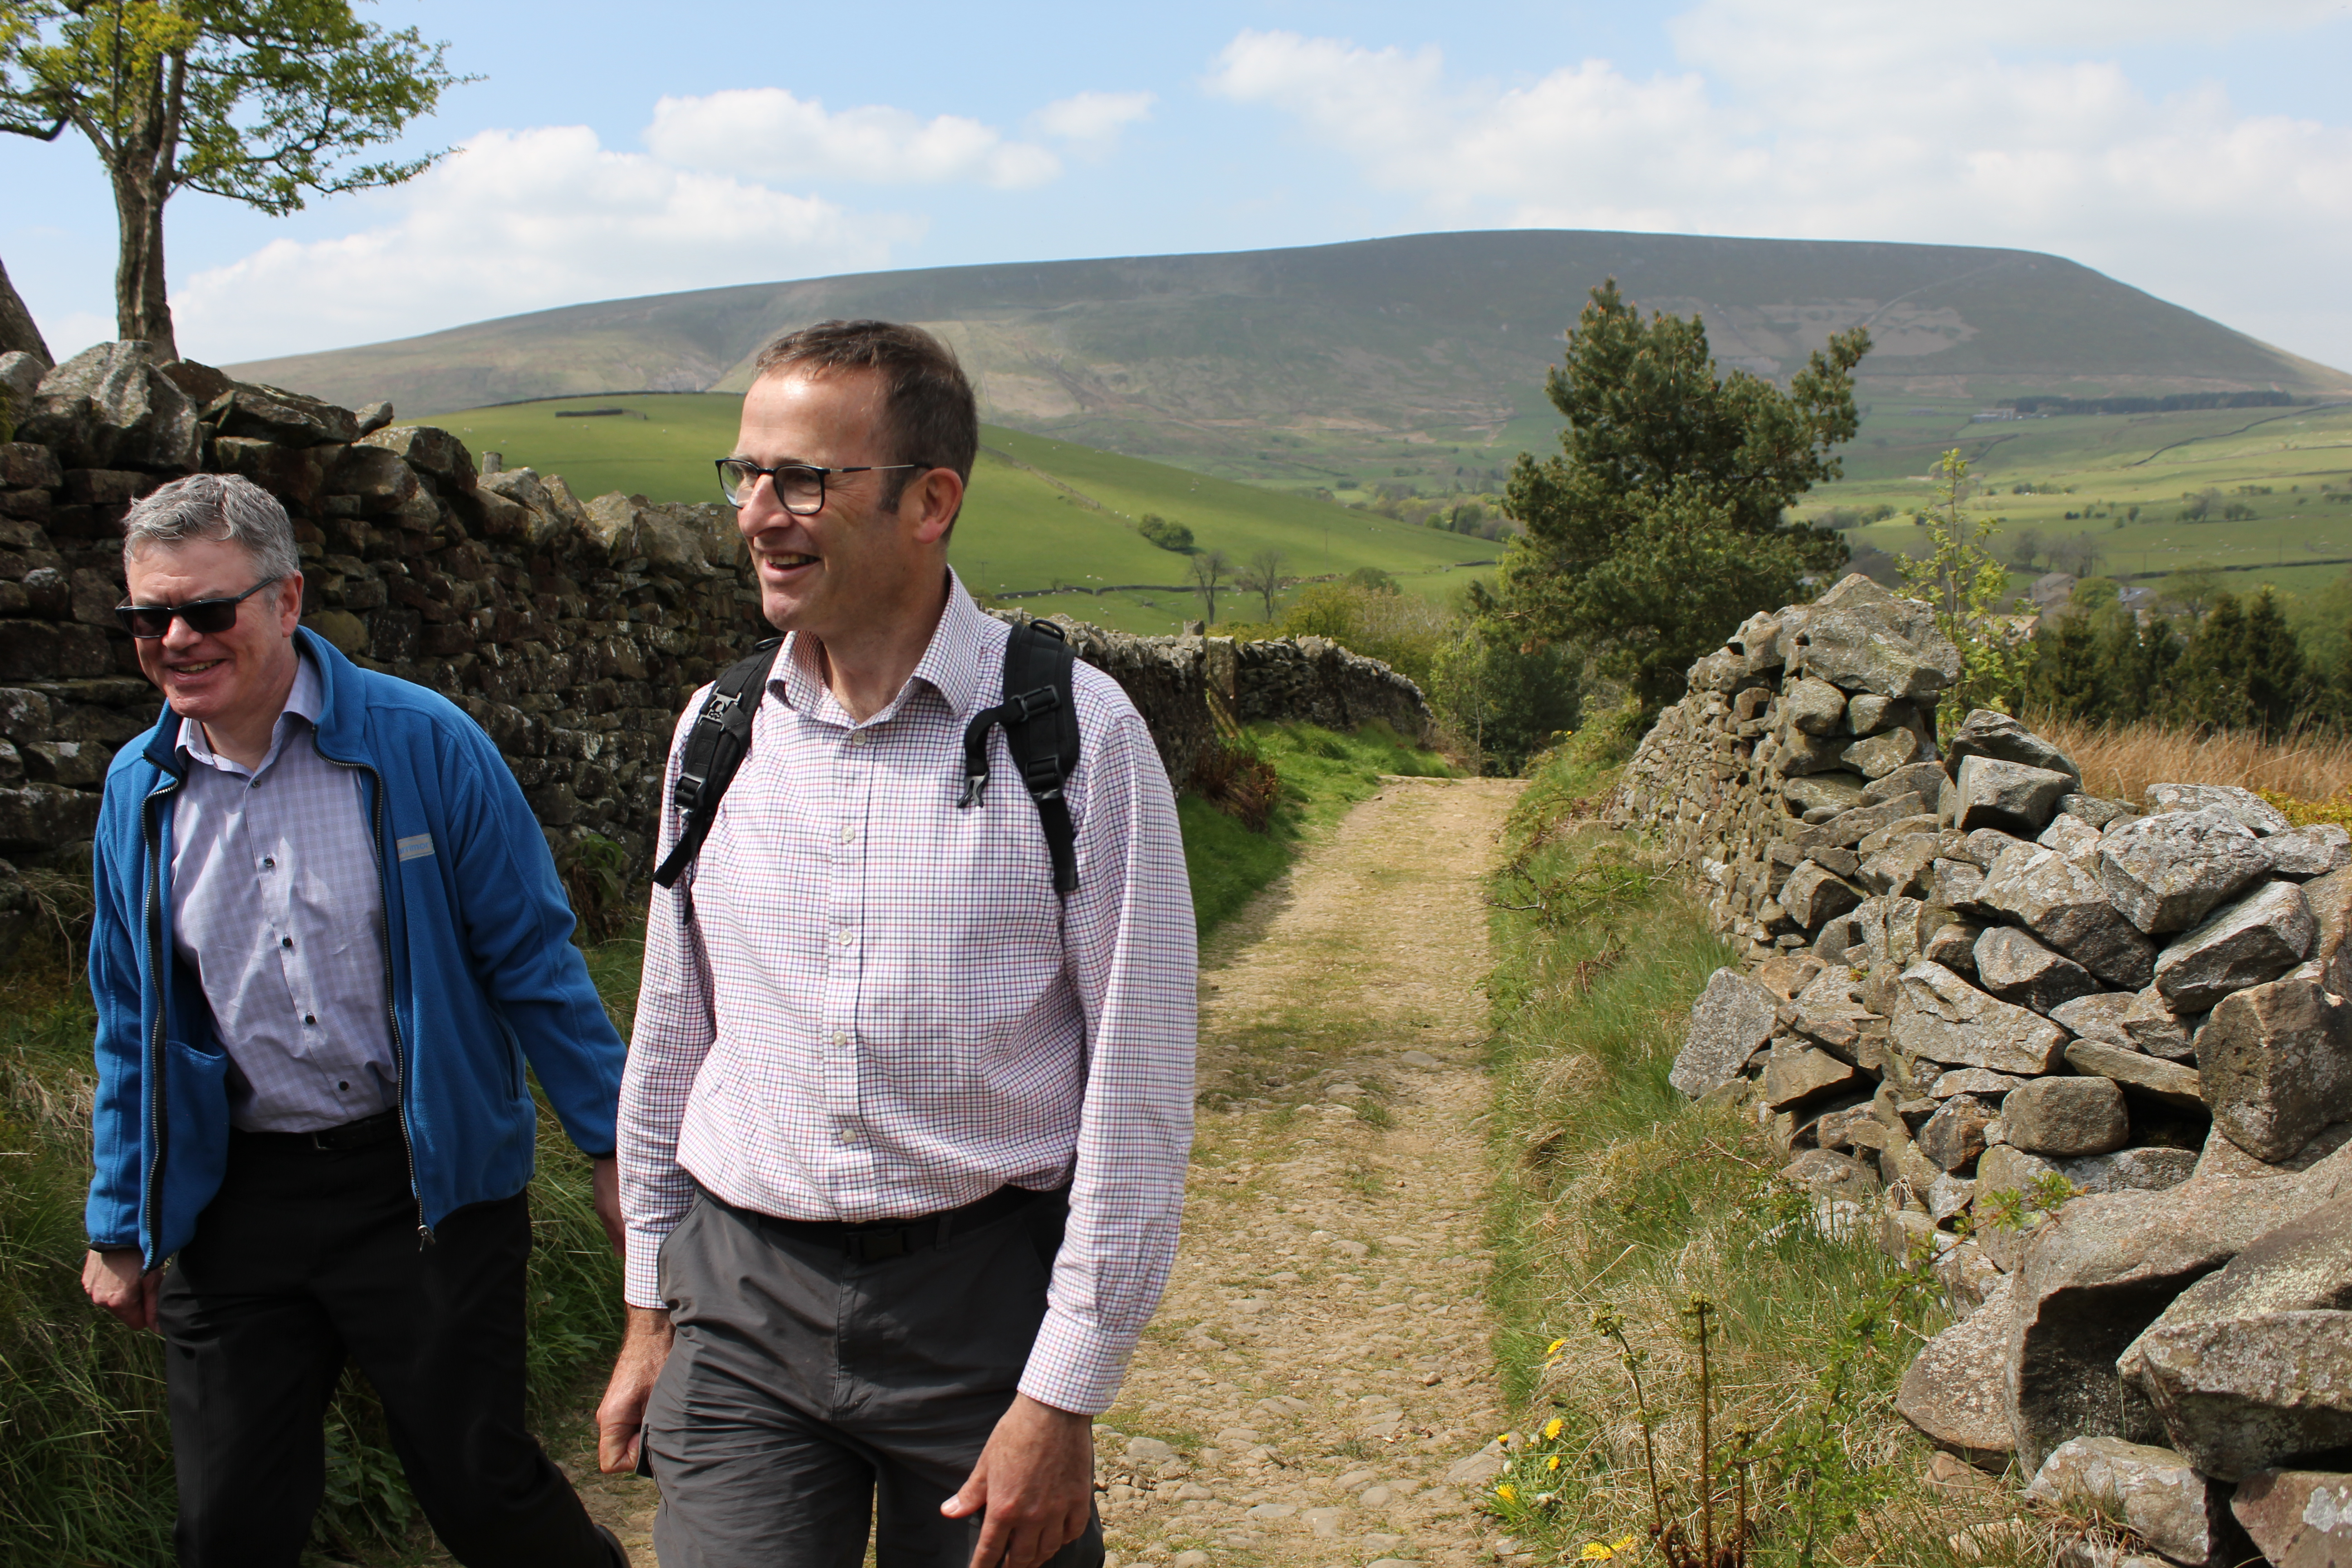 Walking in Pendle is amazing – it's crystal clear!